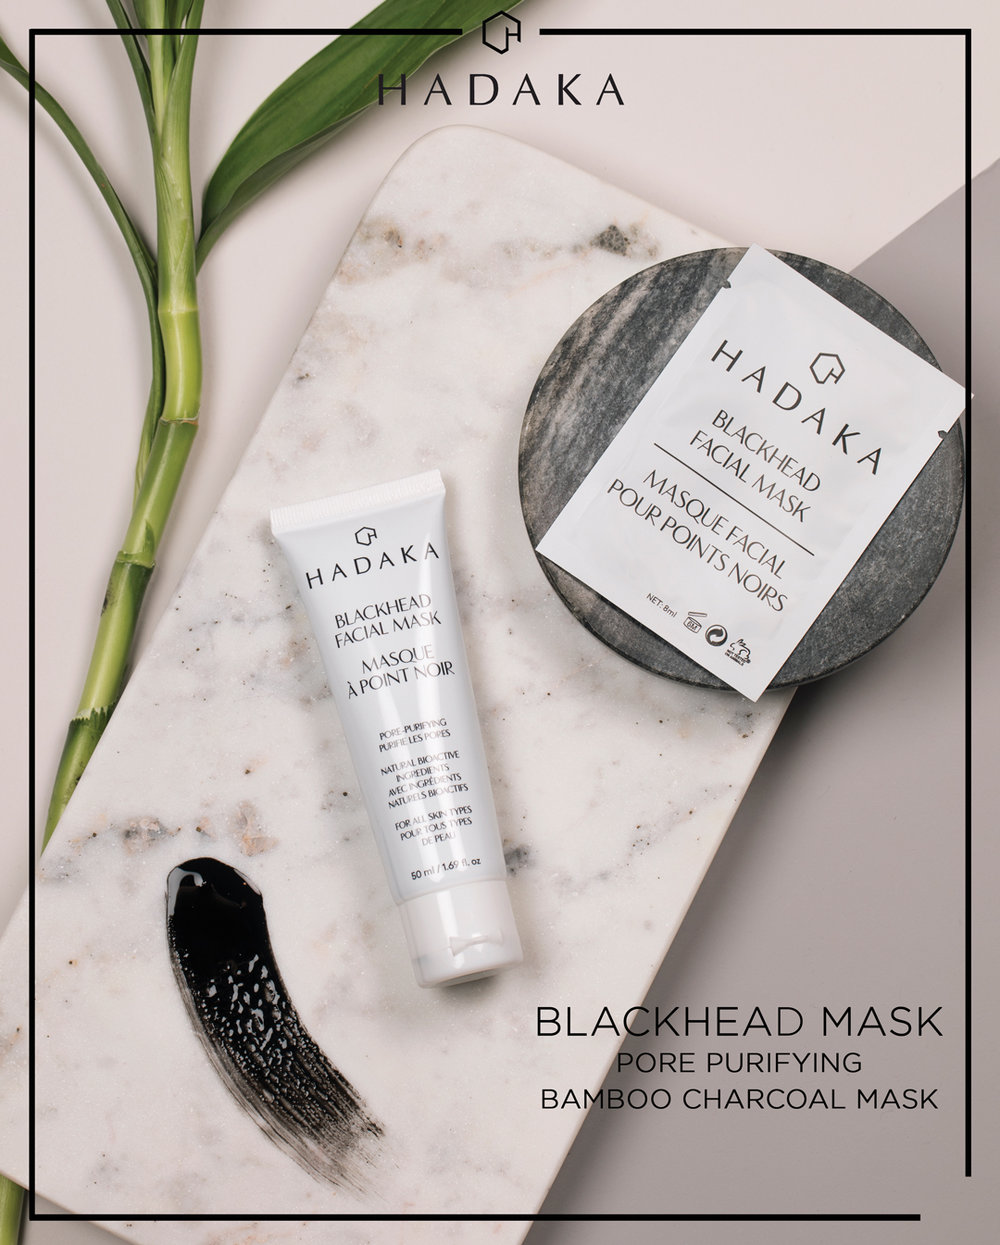 Unlike no other blackhead mask on the market, HADAKA's Blackhead Facial Masks contain pore purifying bamboo charcoal. Pictured above: Sachets - $3.00 Tubes - $14.95